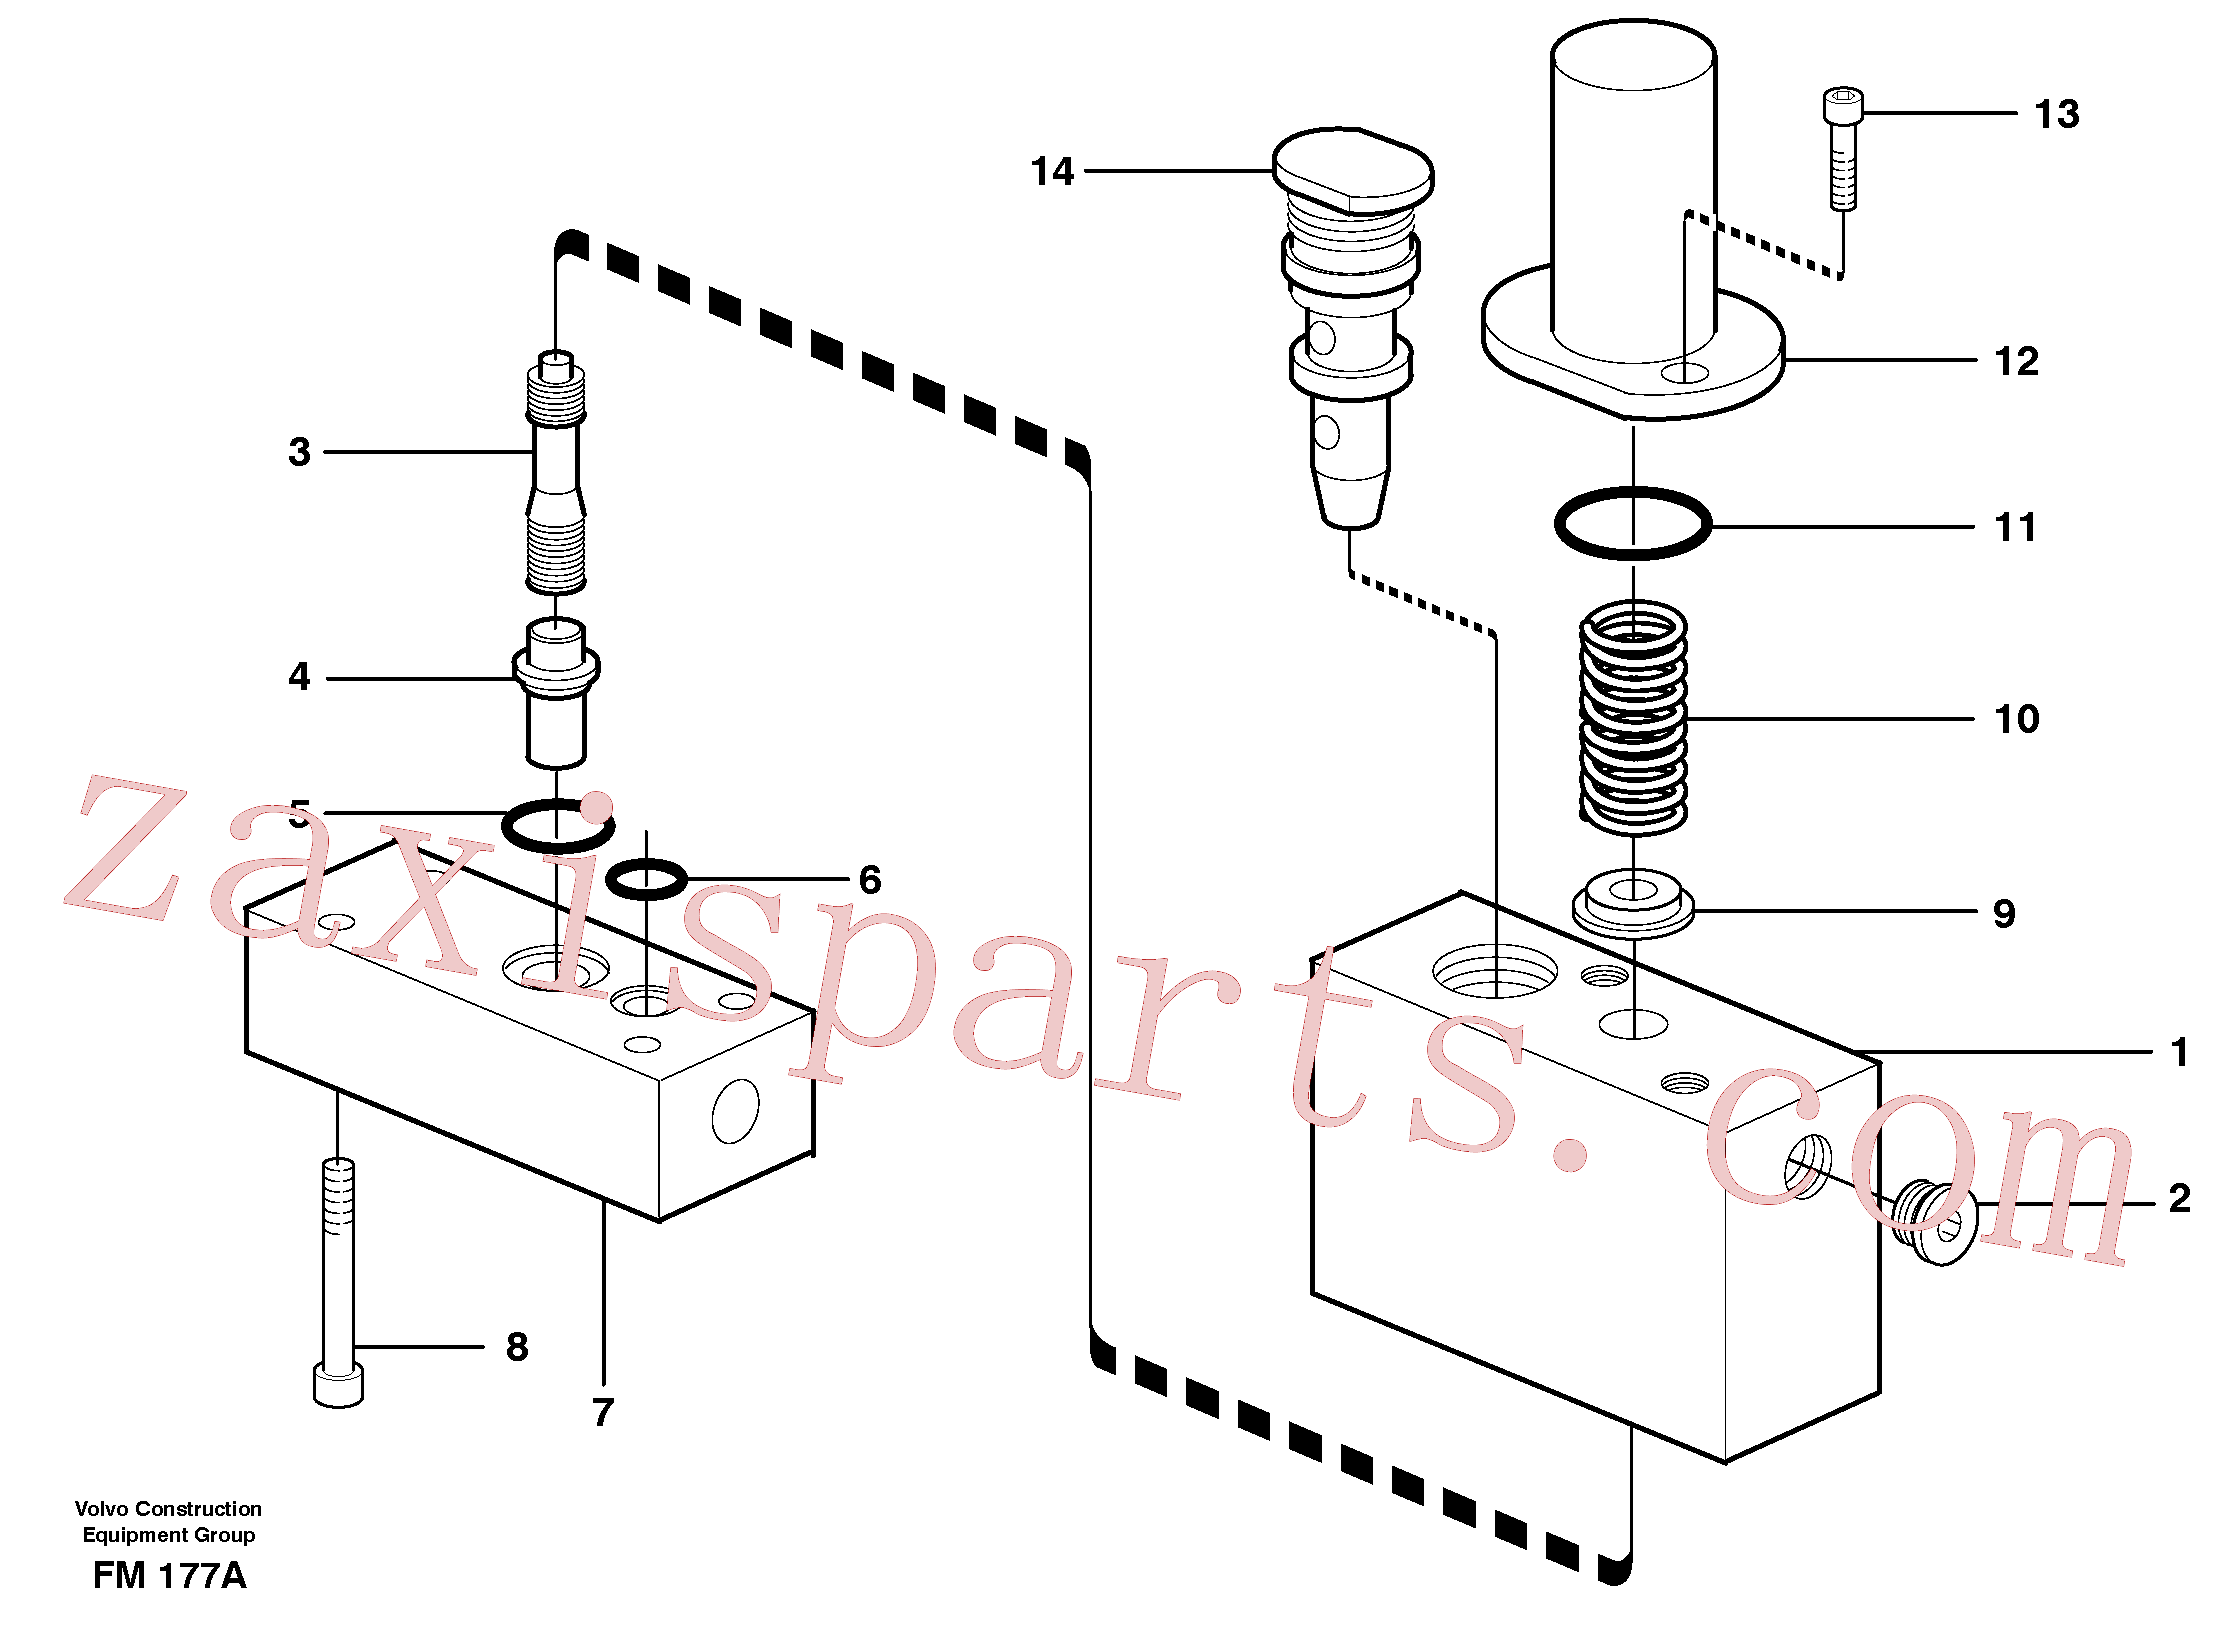 VOE14054984 for Volvo Thermostatic valve(FM177A assembly)